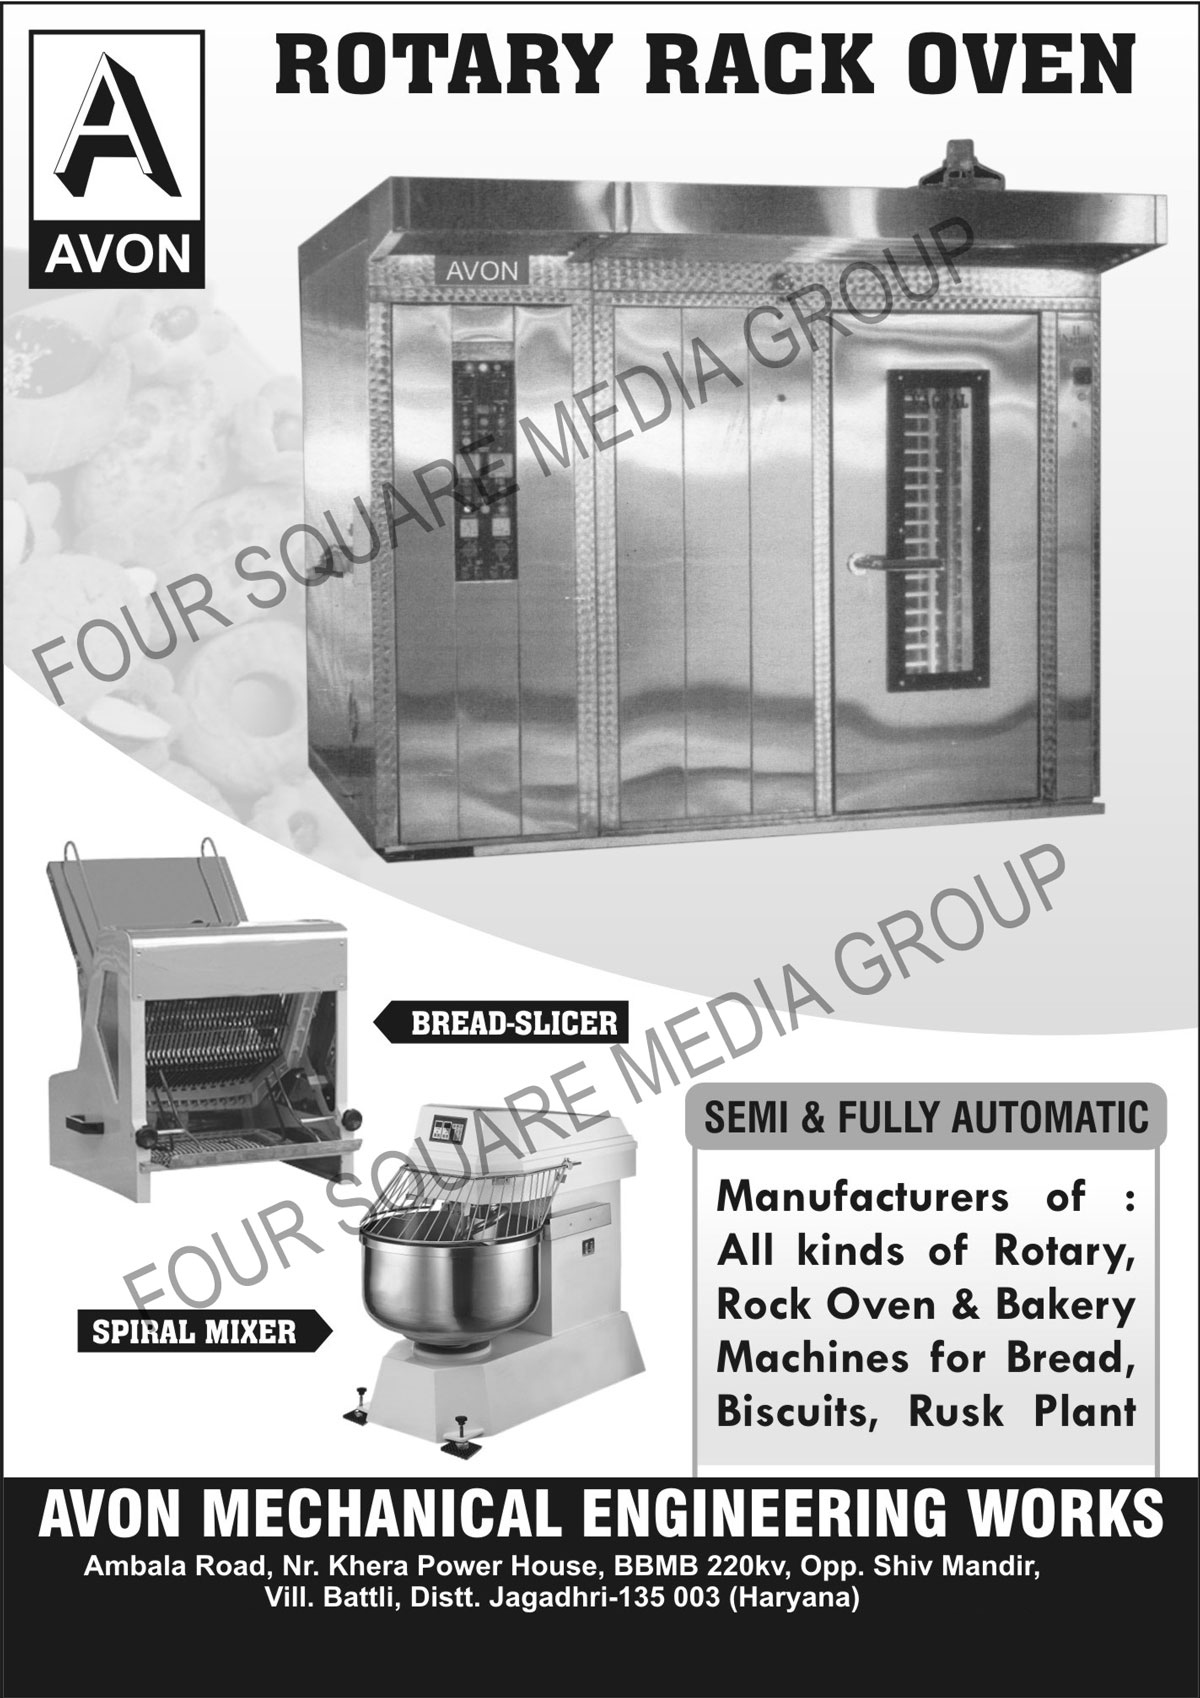 Semi Automatic Rotary Rack Ovens Fully Rusk Plant Machines Avon Mechanical Engineering Works